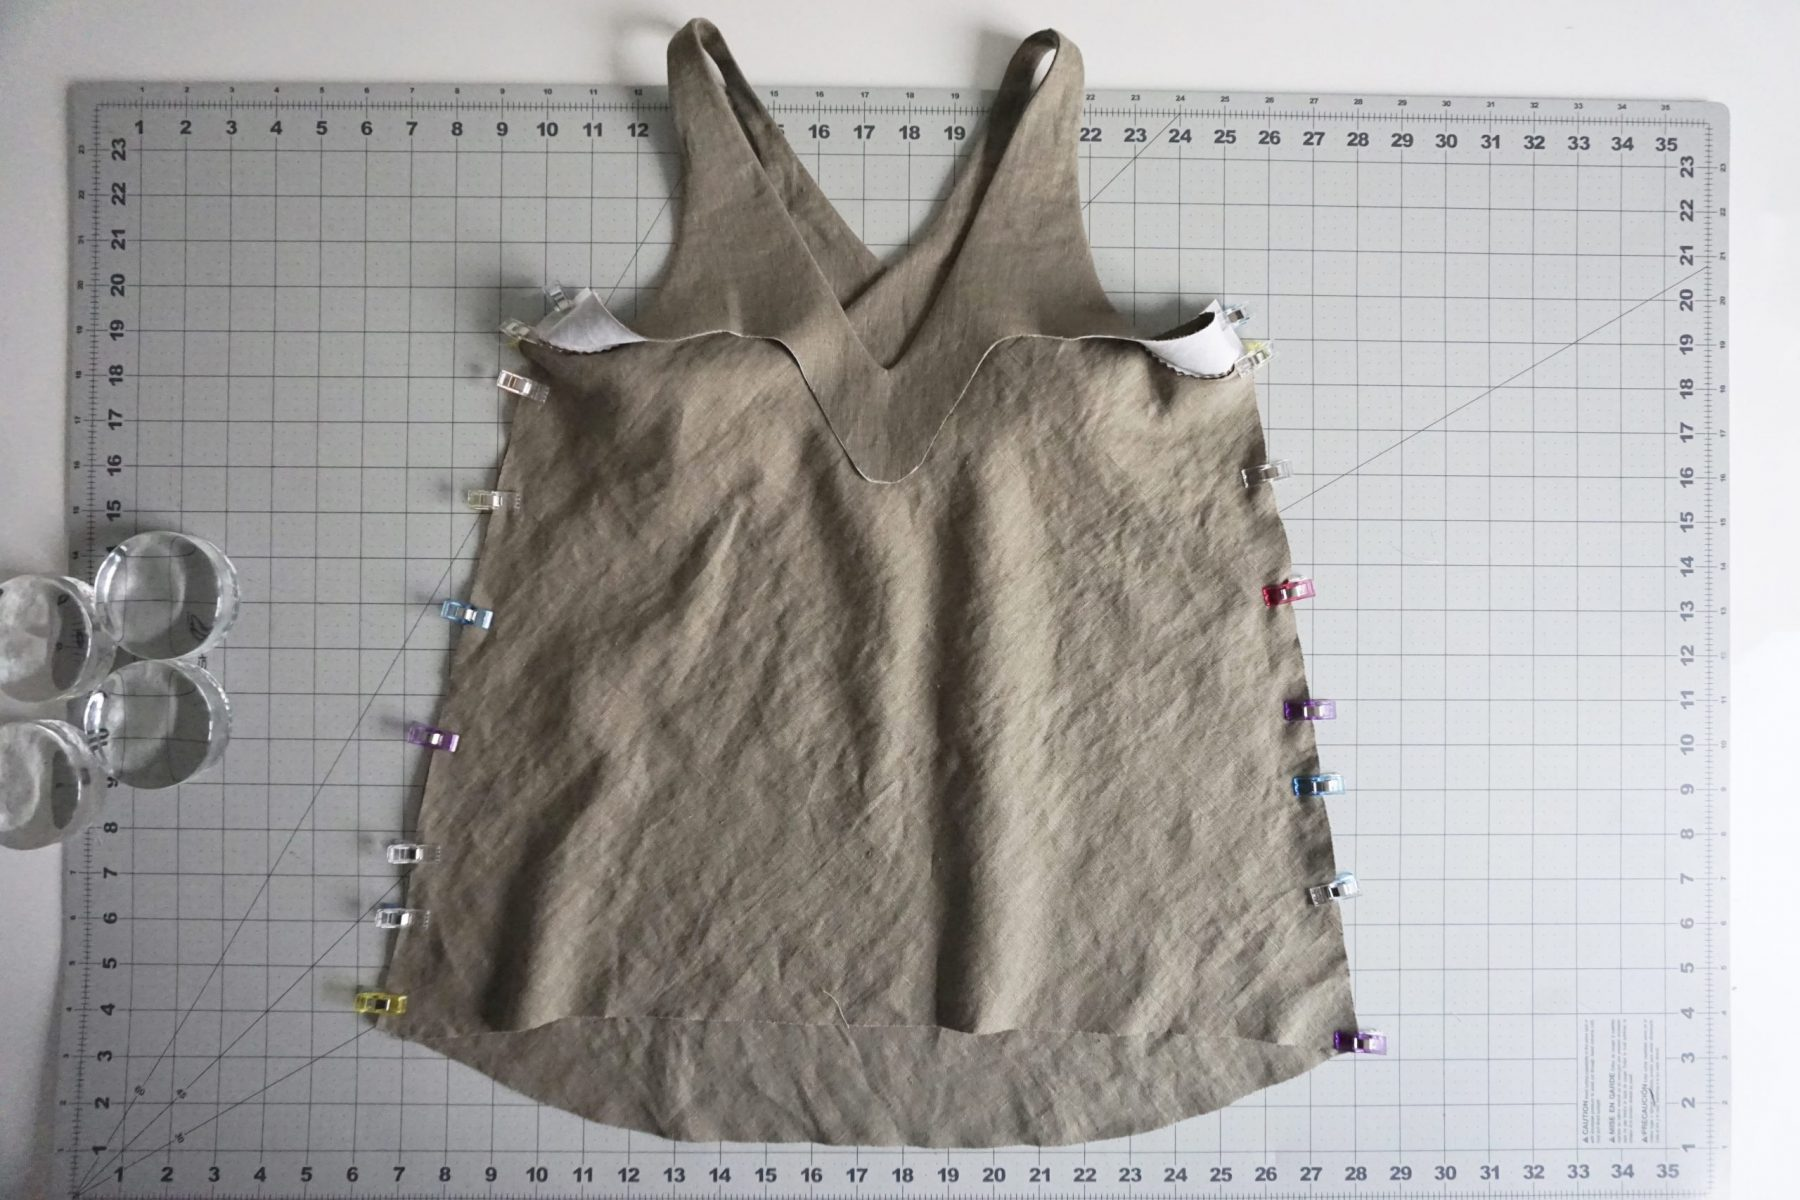 Next, you'll fold the camisole at the shoulder seams